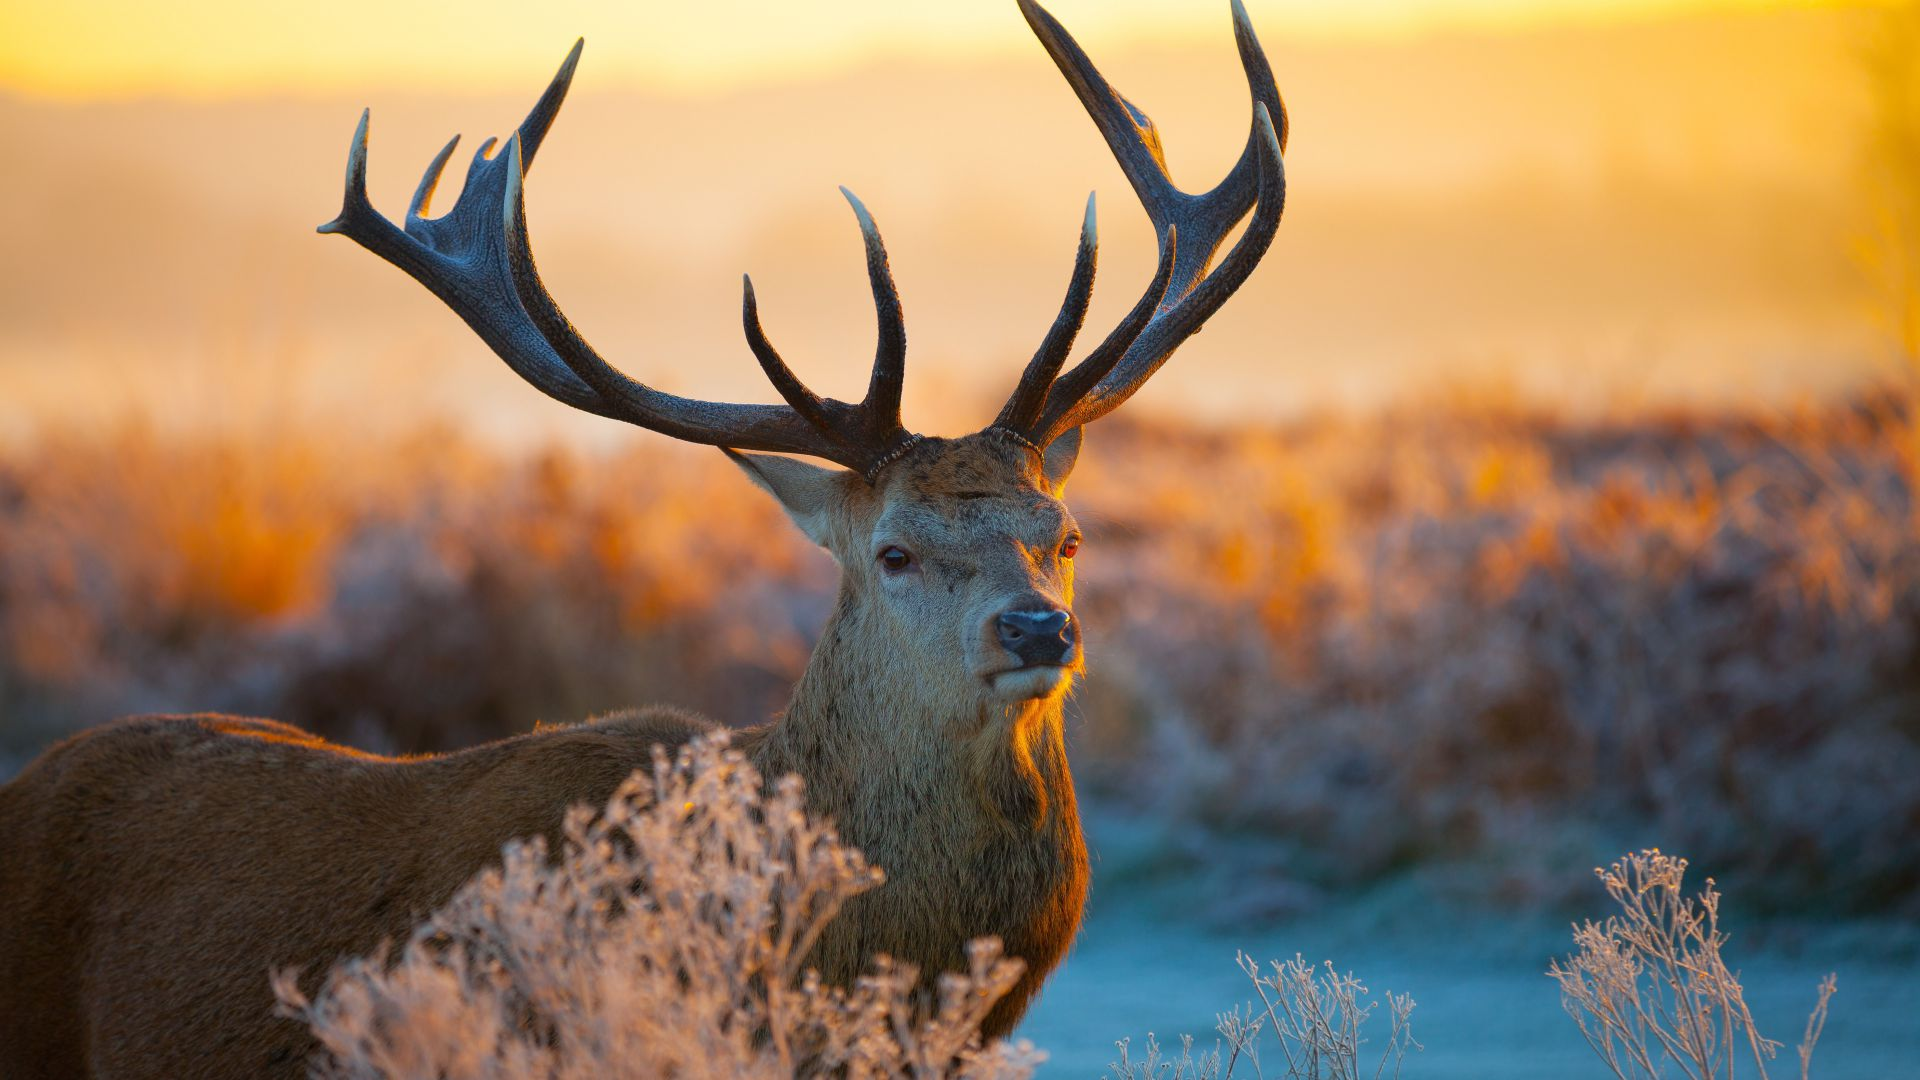 Deer, savanna, sunset, cute animals (horizontal)